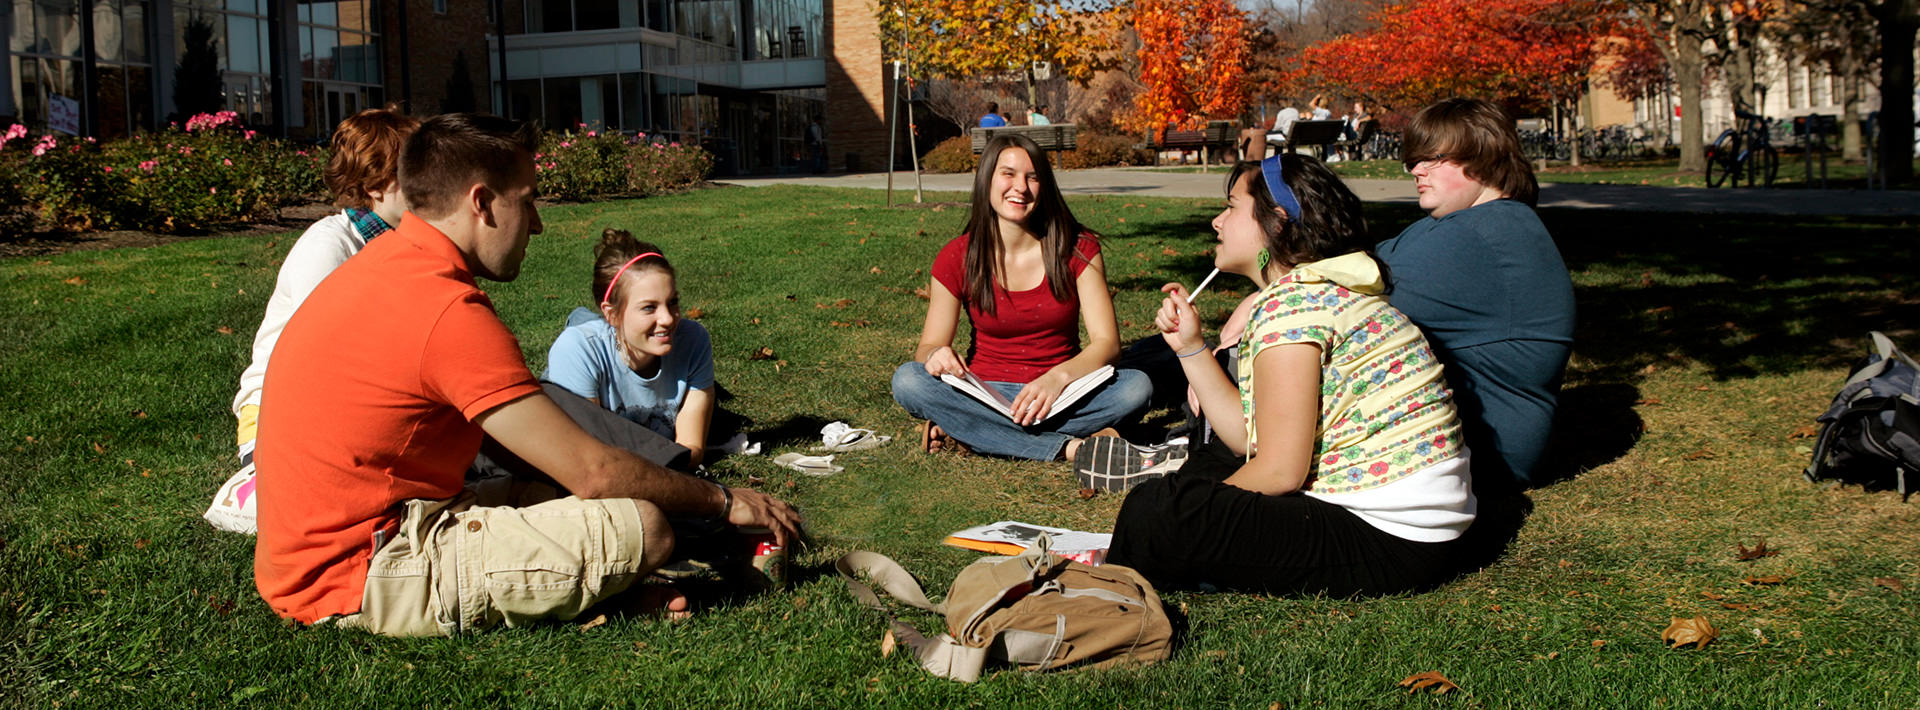 students-outside-studying-campus-08-9161-mini